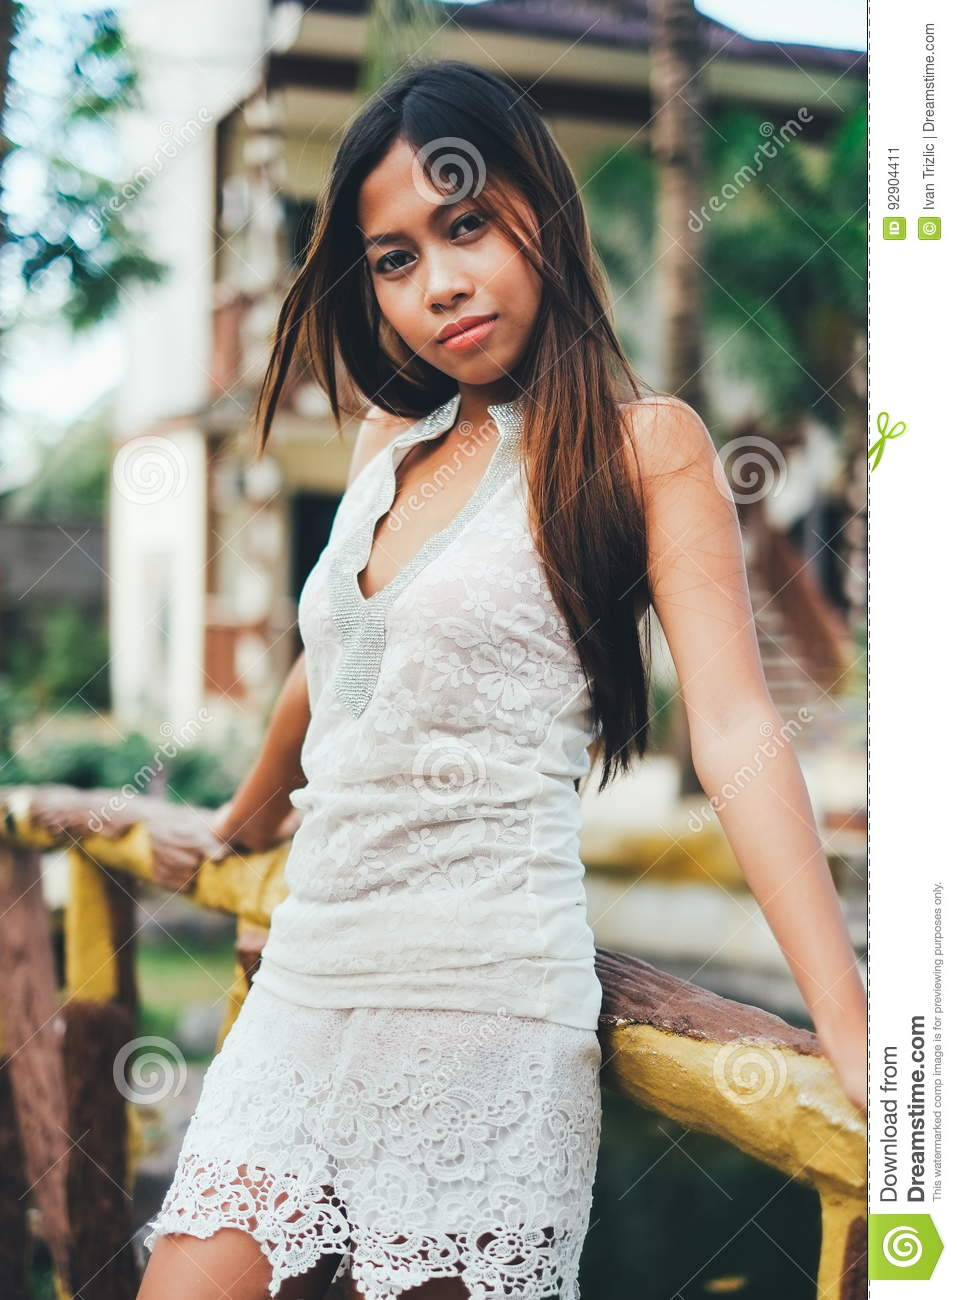 Outdoor fashion portrait of young pretty happy woman in summer outfit posing in luxury resort . Holiday vacation mood